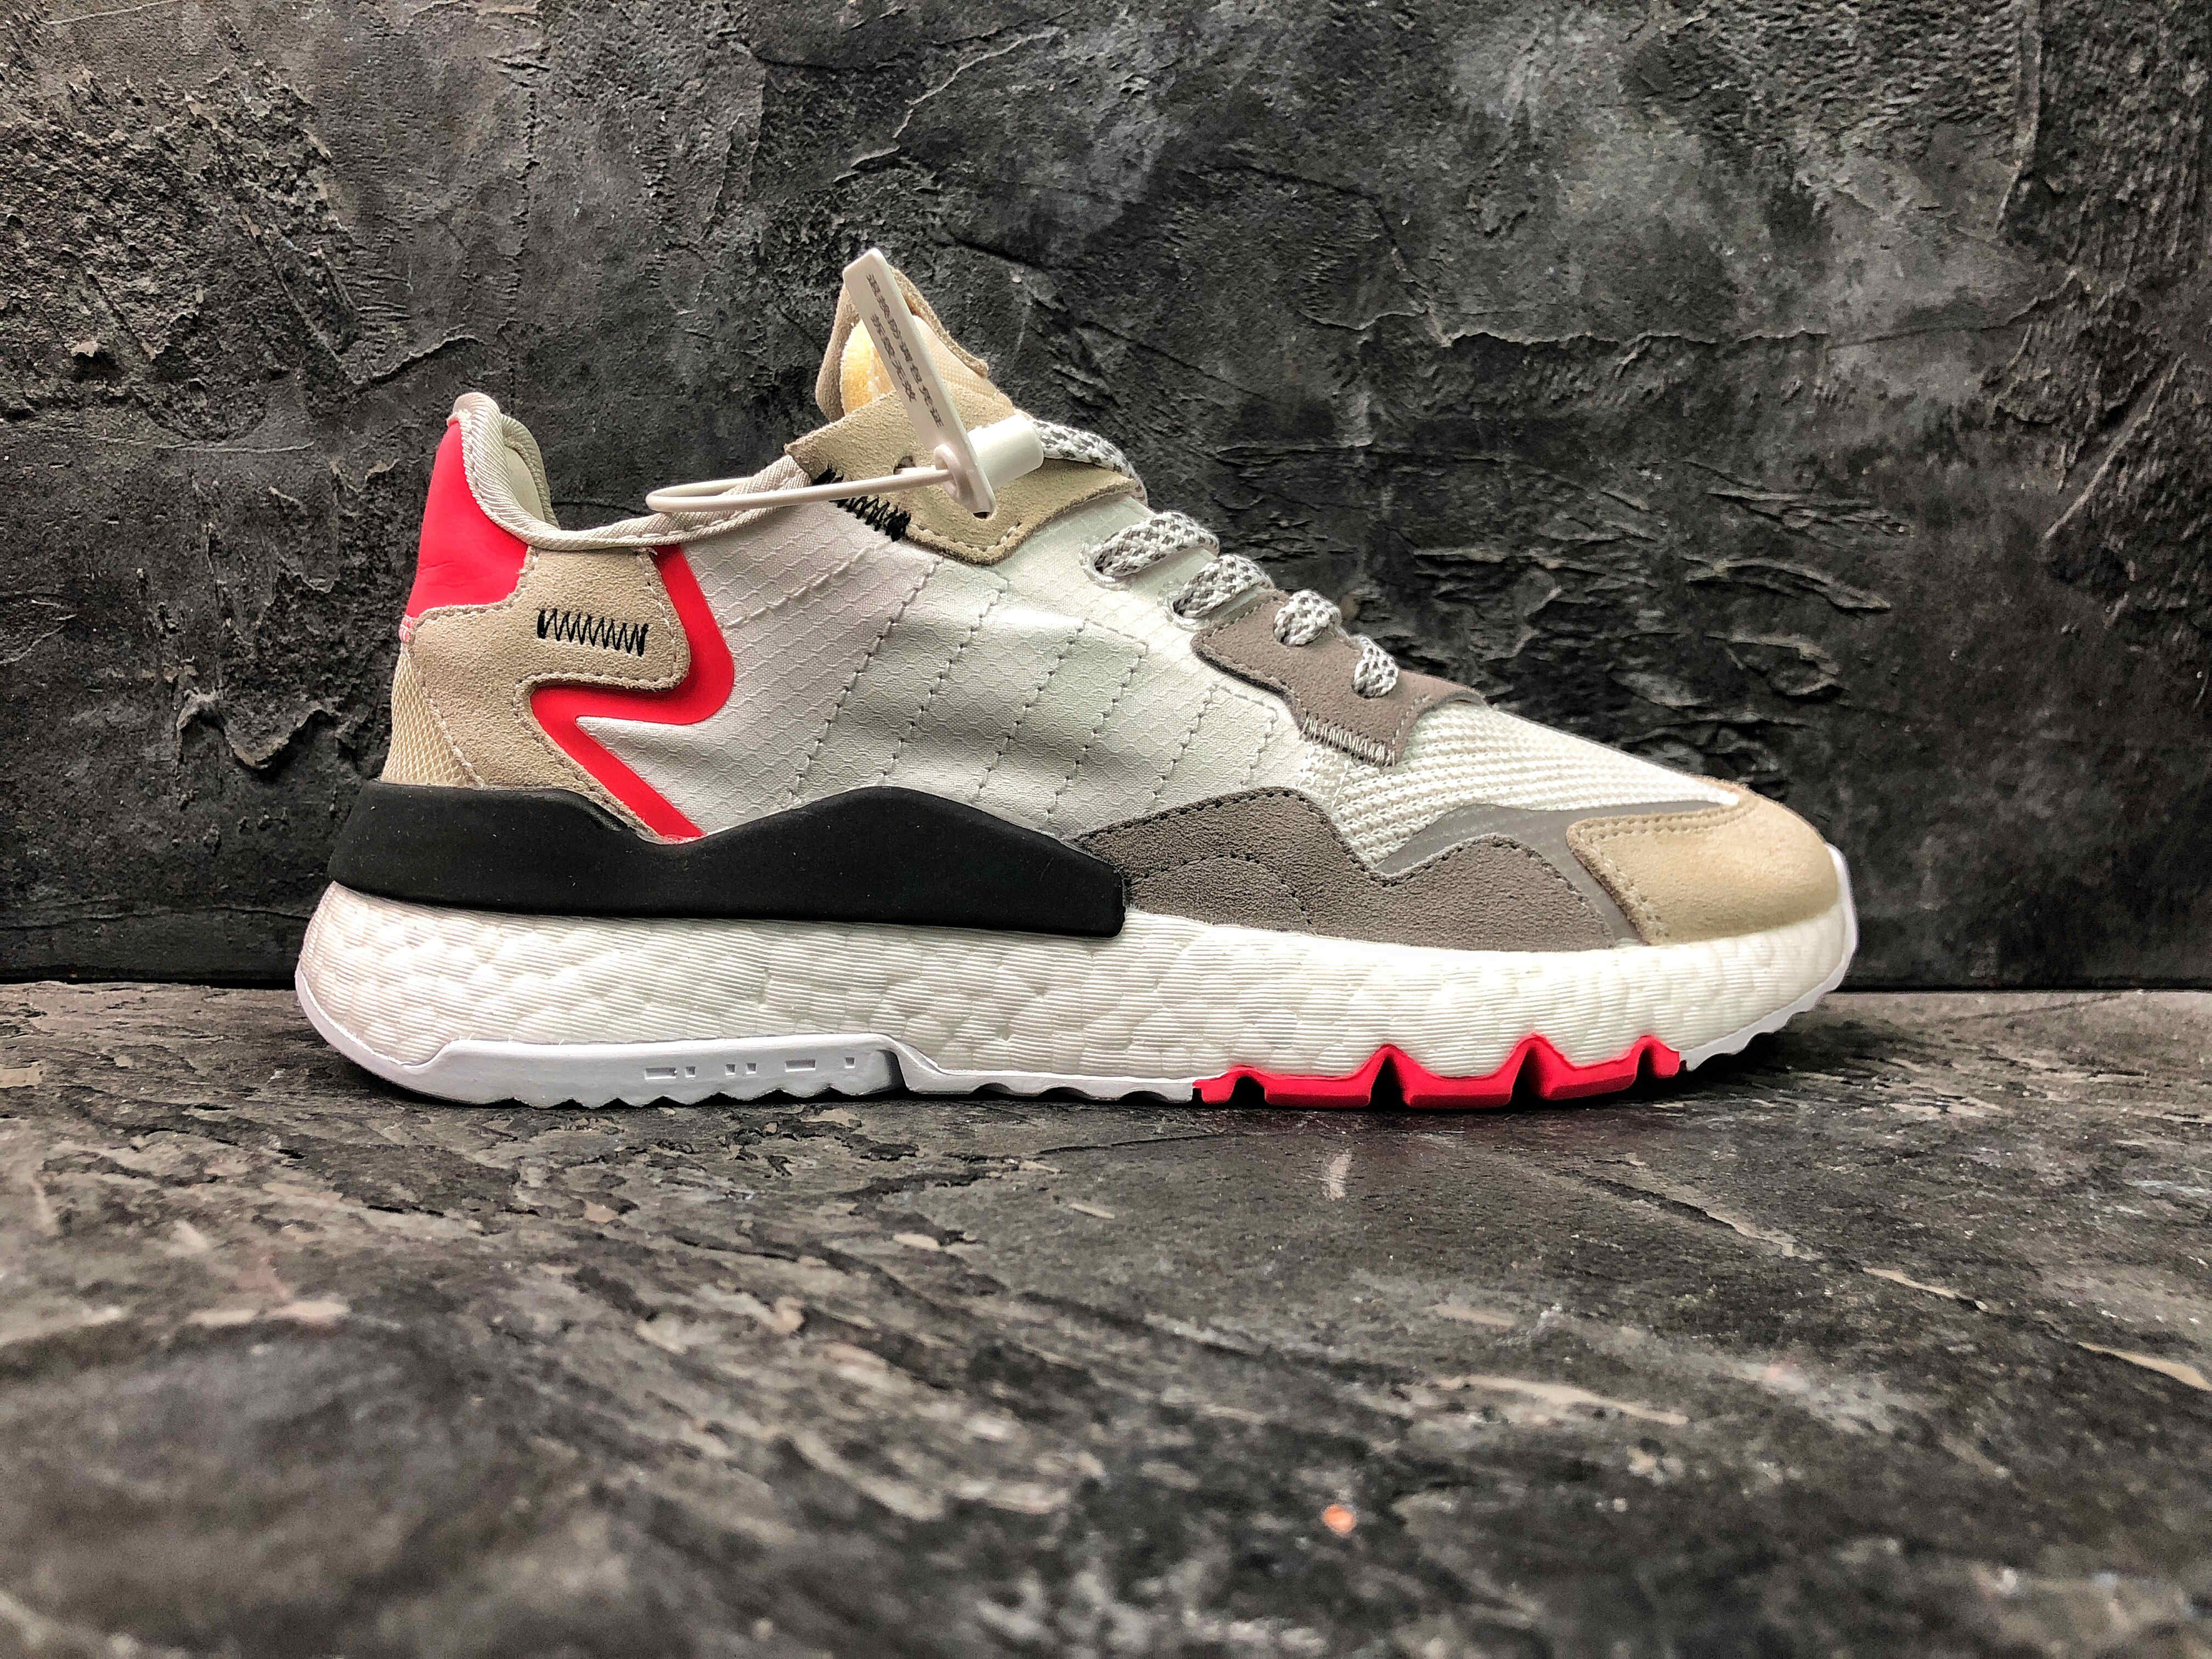 the best attitude 0be9a 88e37 Fashion   Sneakers   Adidas Nite Jogger 2019 Boost F34123  sneaker   sneakers  adidas